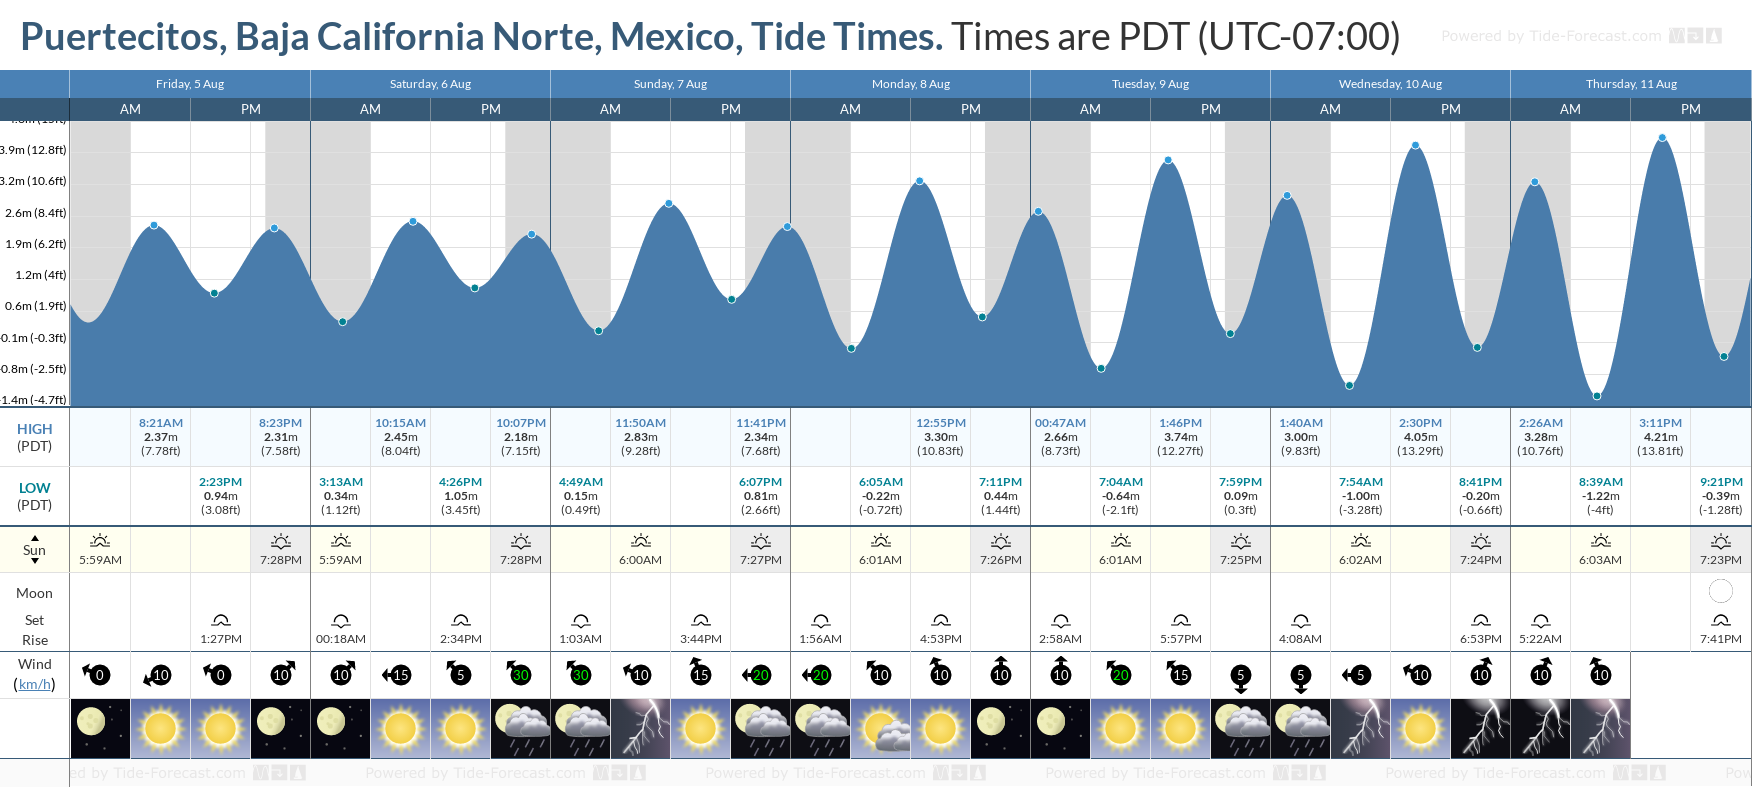 Puertecitos, Baja California Norte, Mexico Tide Chart including high and low tide tide times for the next 7 days